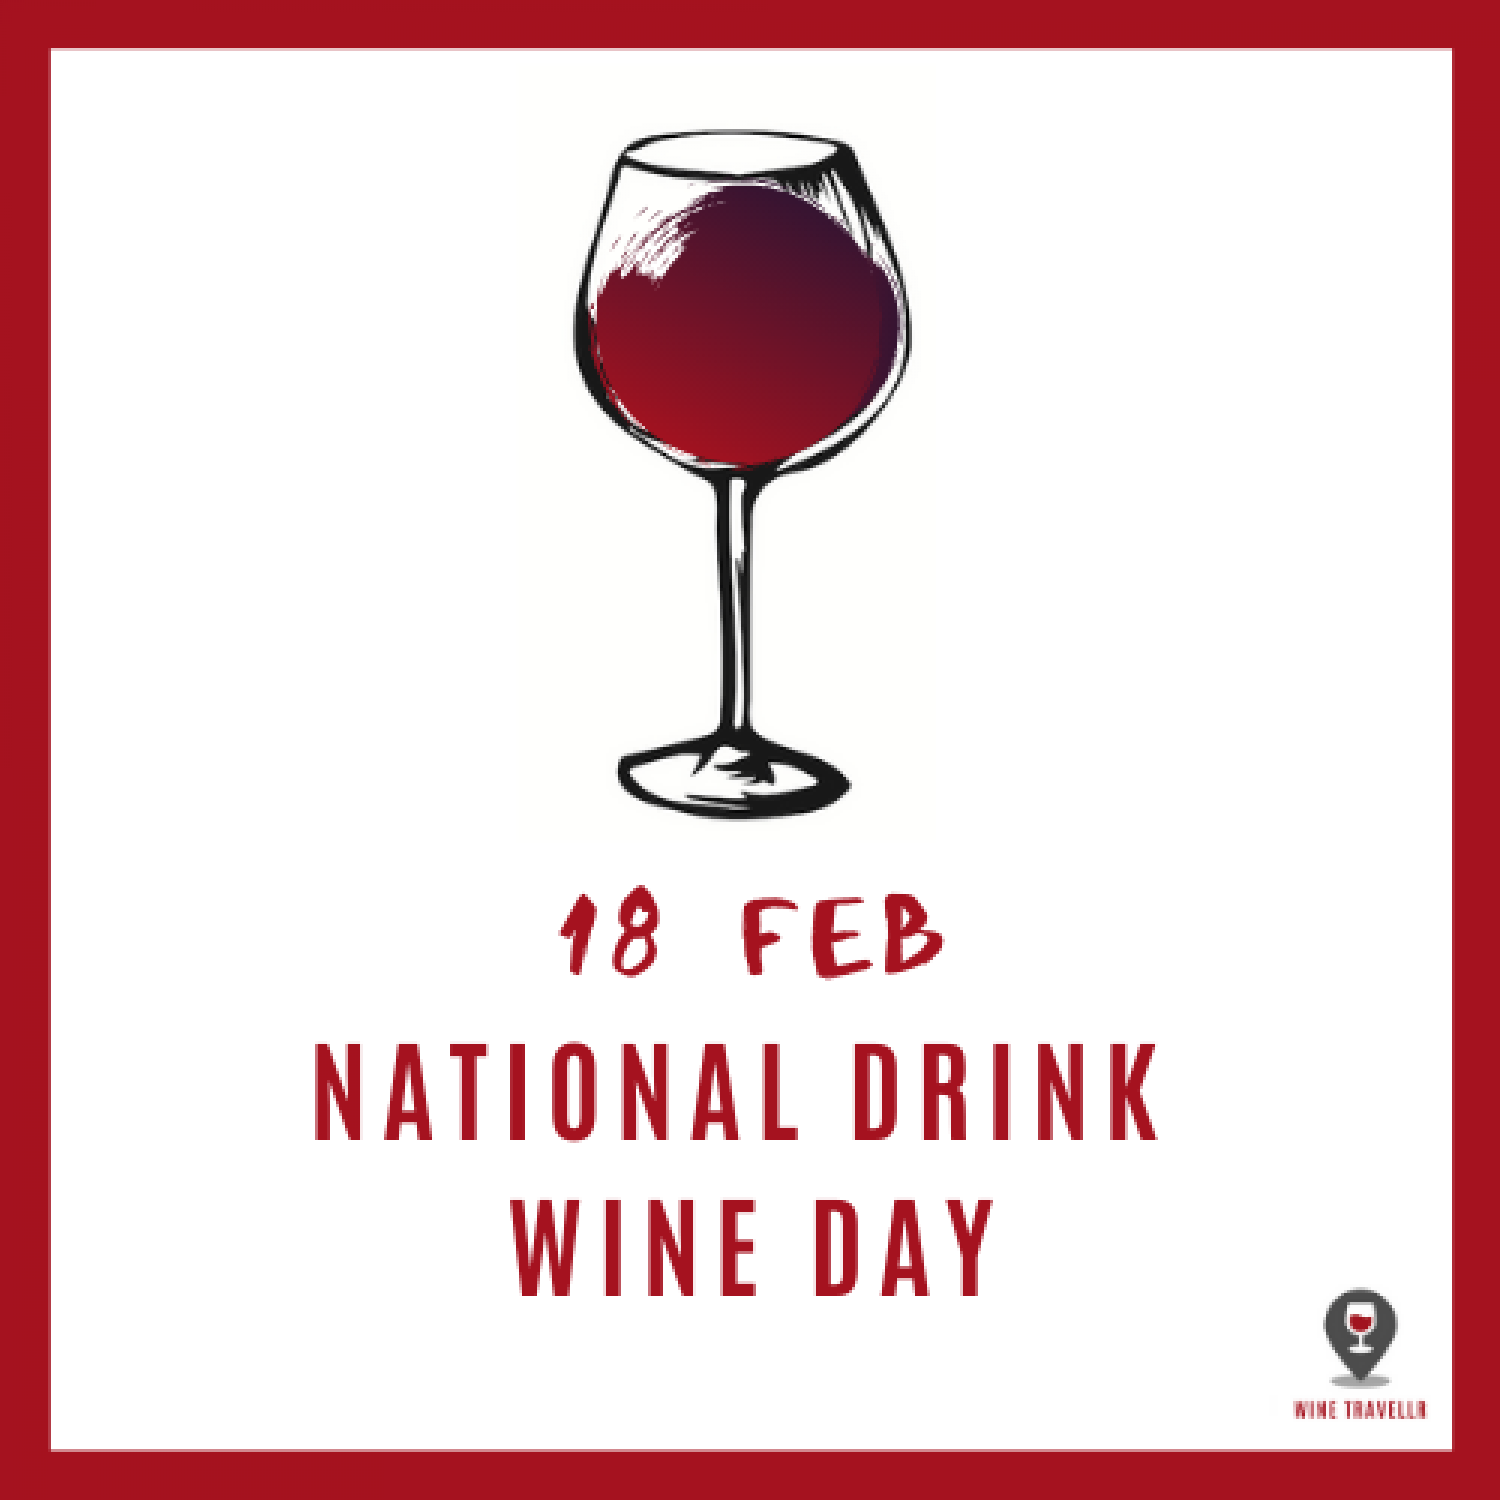 National Drink Wine Day- Wine Travellr Infographic